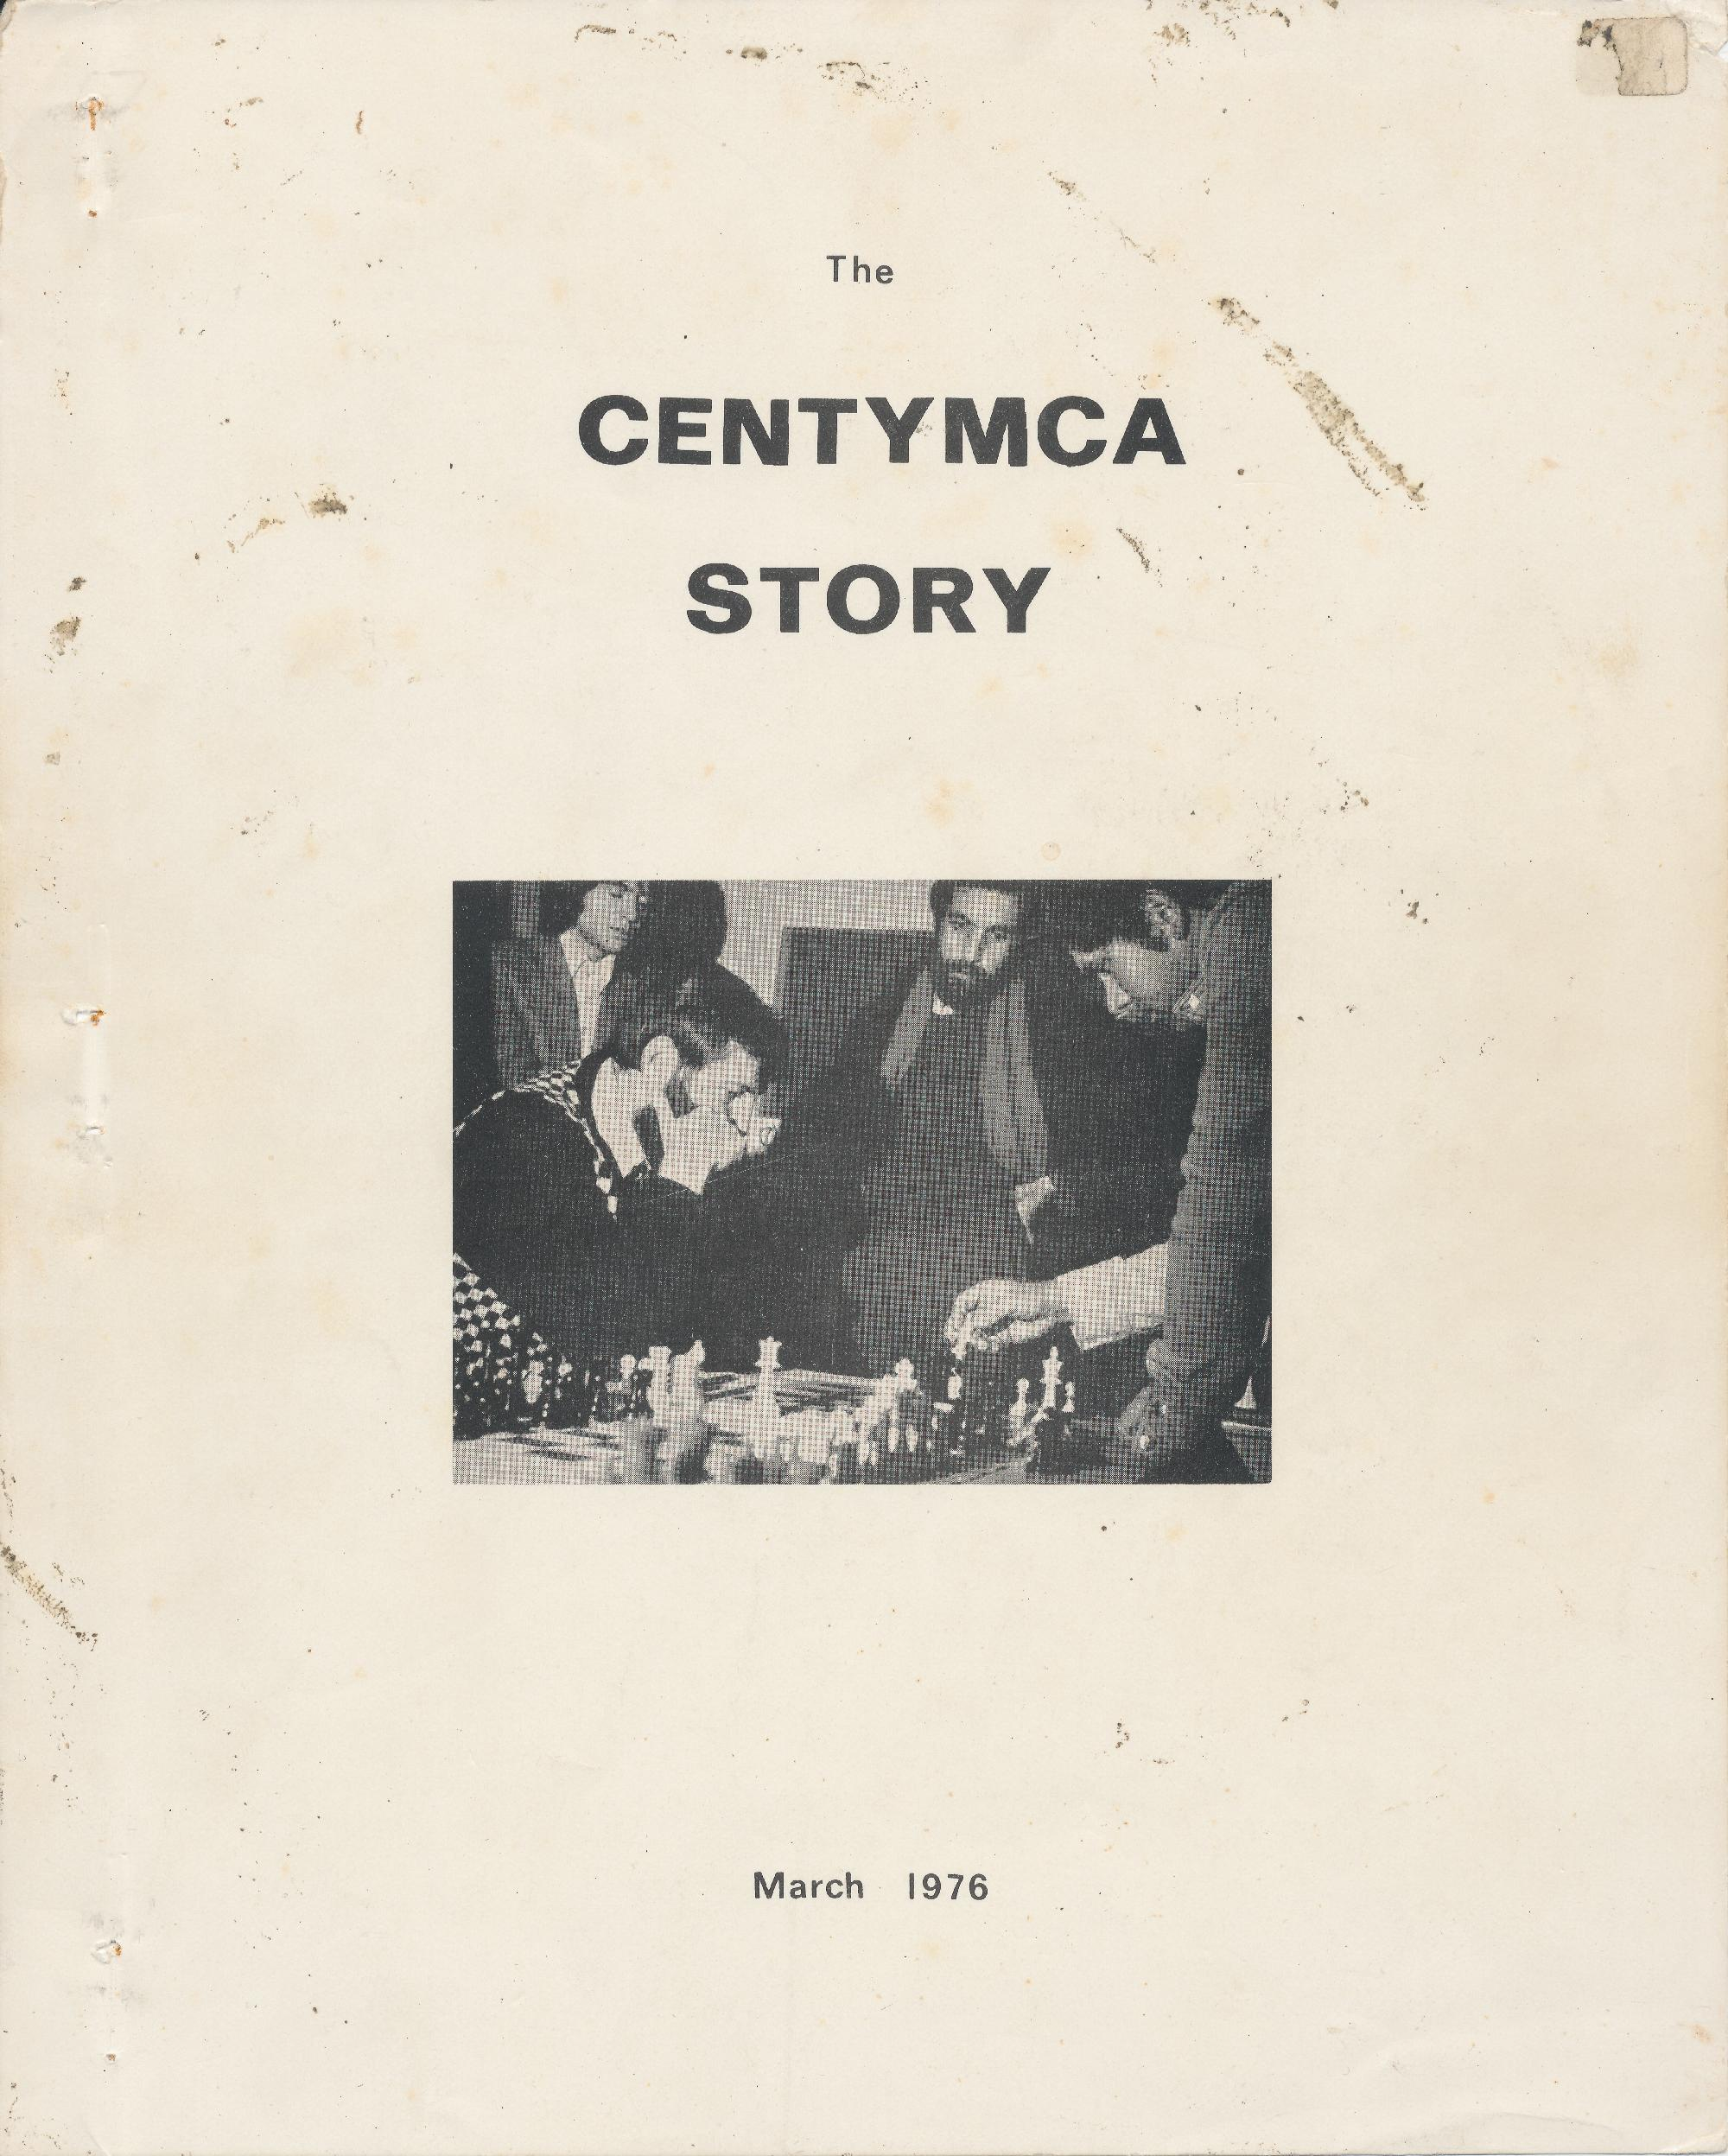 The CentYMCA Story by Jimmy Adams, 1976